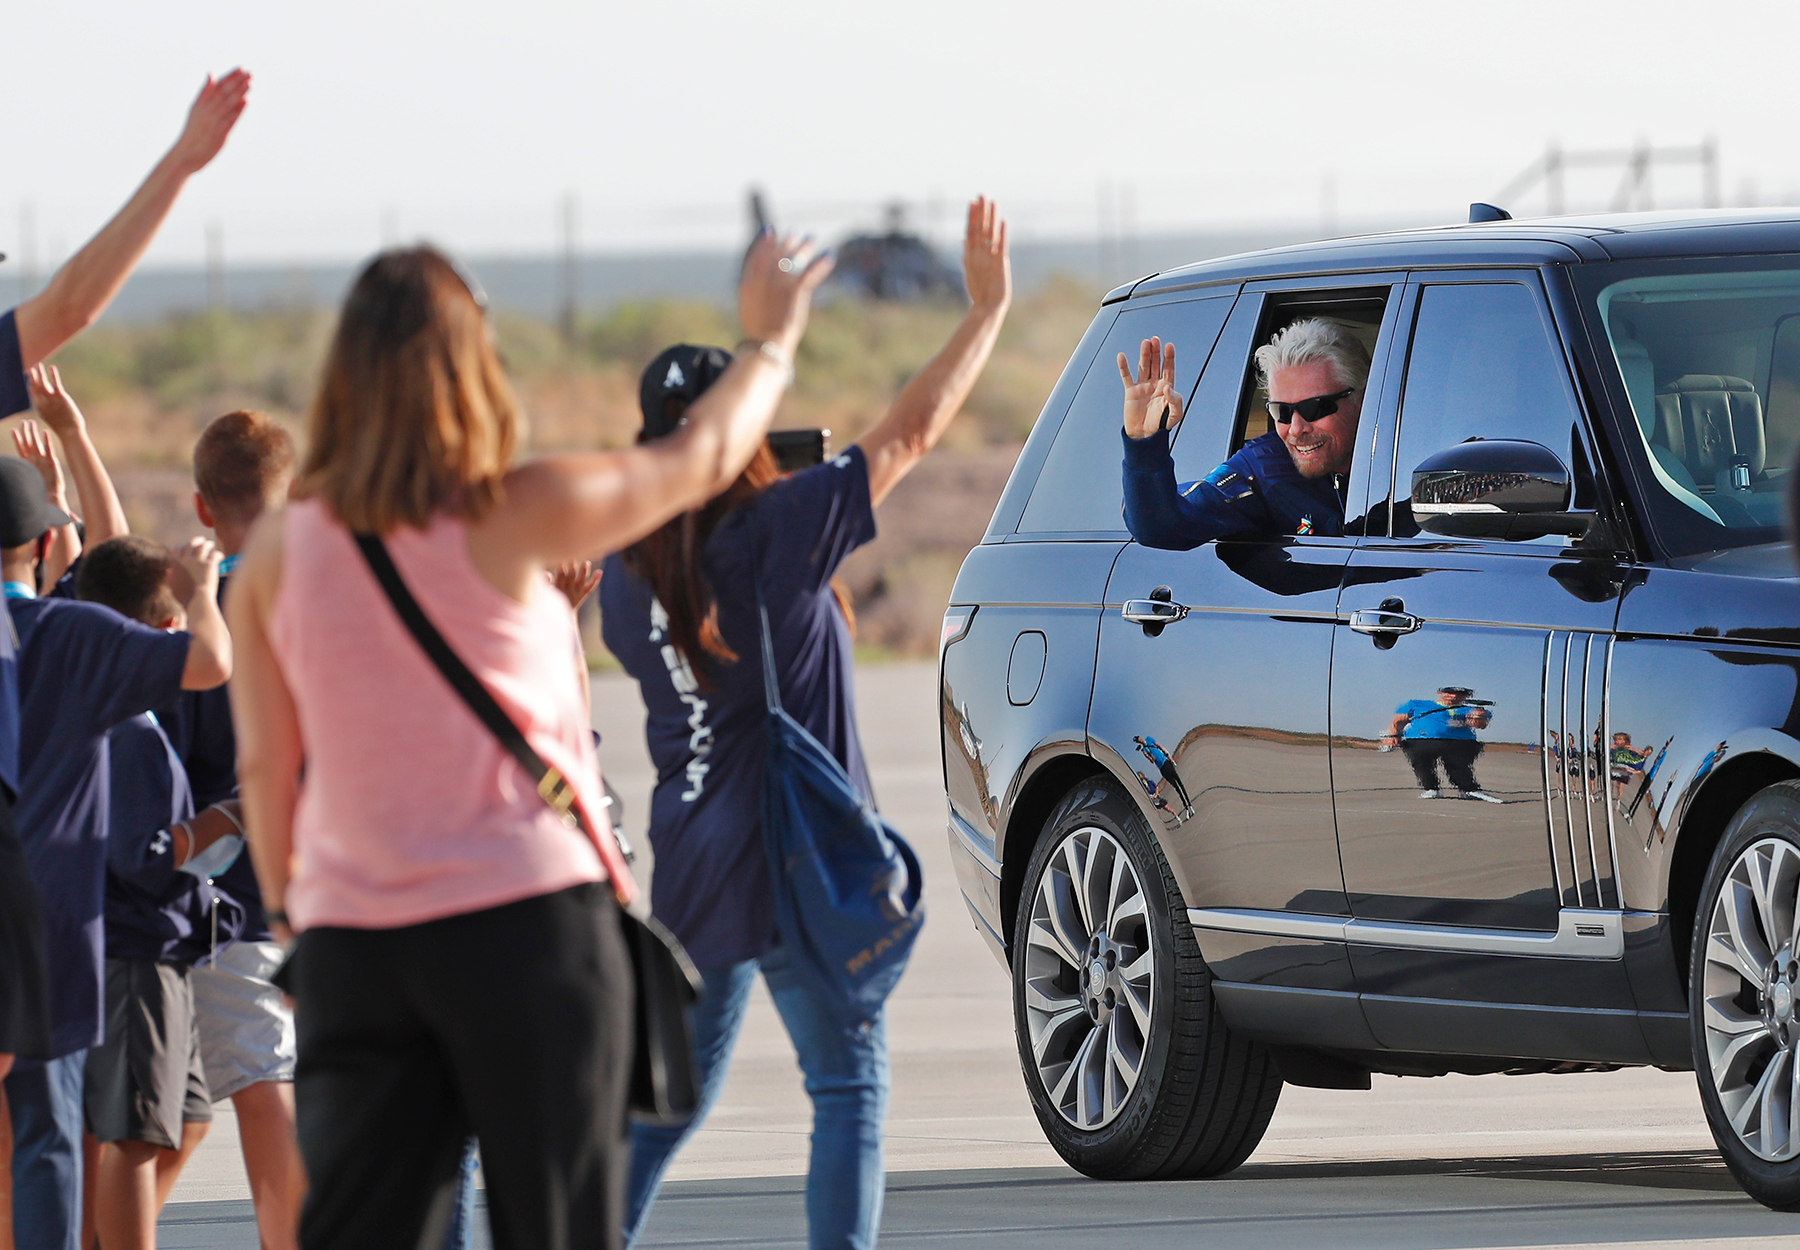 Virgin Galactic founder Richard Branson waves to school children while heading to board the rocket plane that will fly him to space from Spaceport America near Truth or Consequences, New Mexico, Sunday, July 11, 2021. (AP Photo/Andres Leighton)